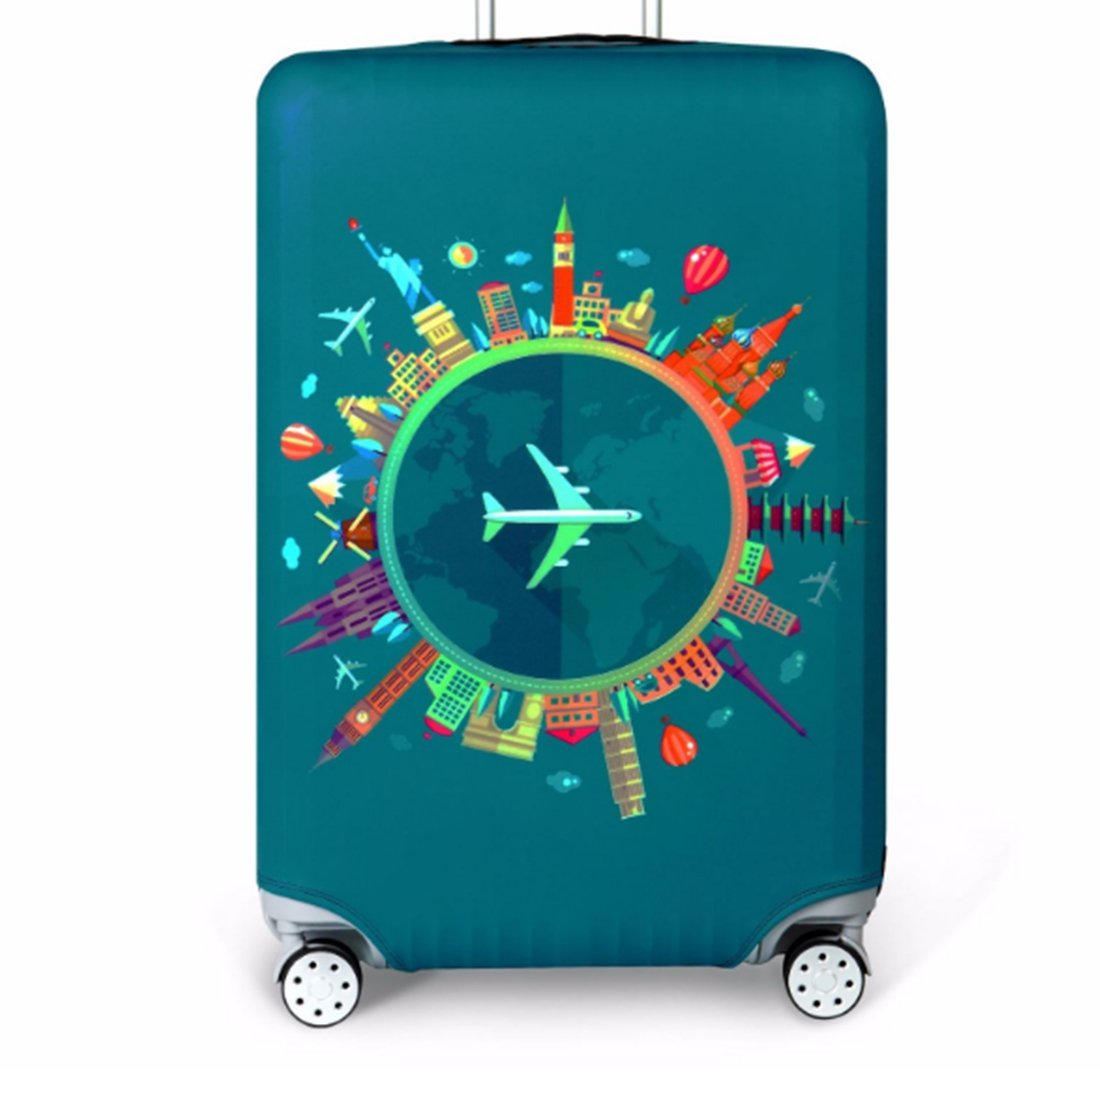 Bestja Washable Travel Luggage Cover Elastic Suitcase Trolley Protector Cover for 18-32 Inch Luggage (Travel, M)